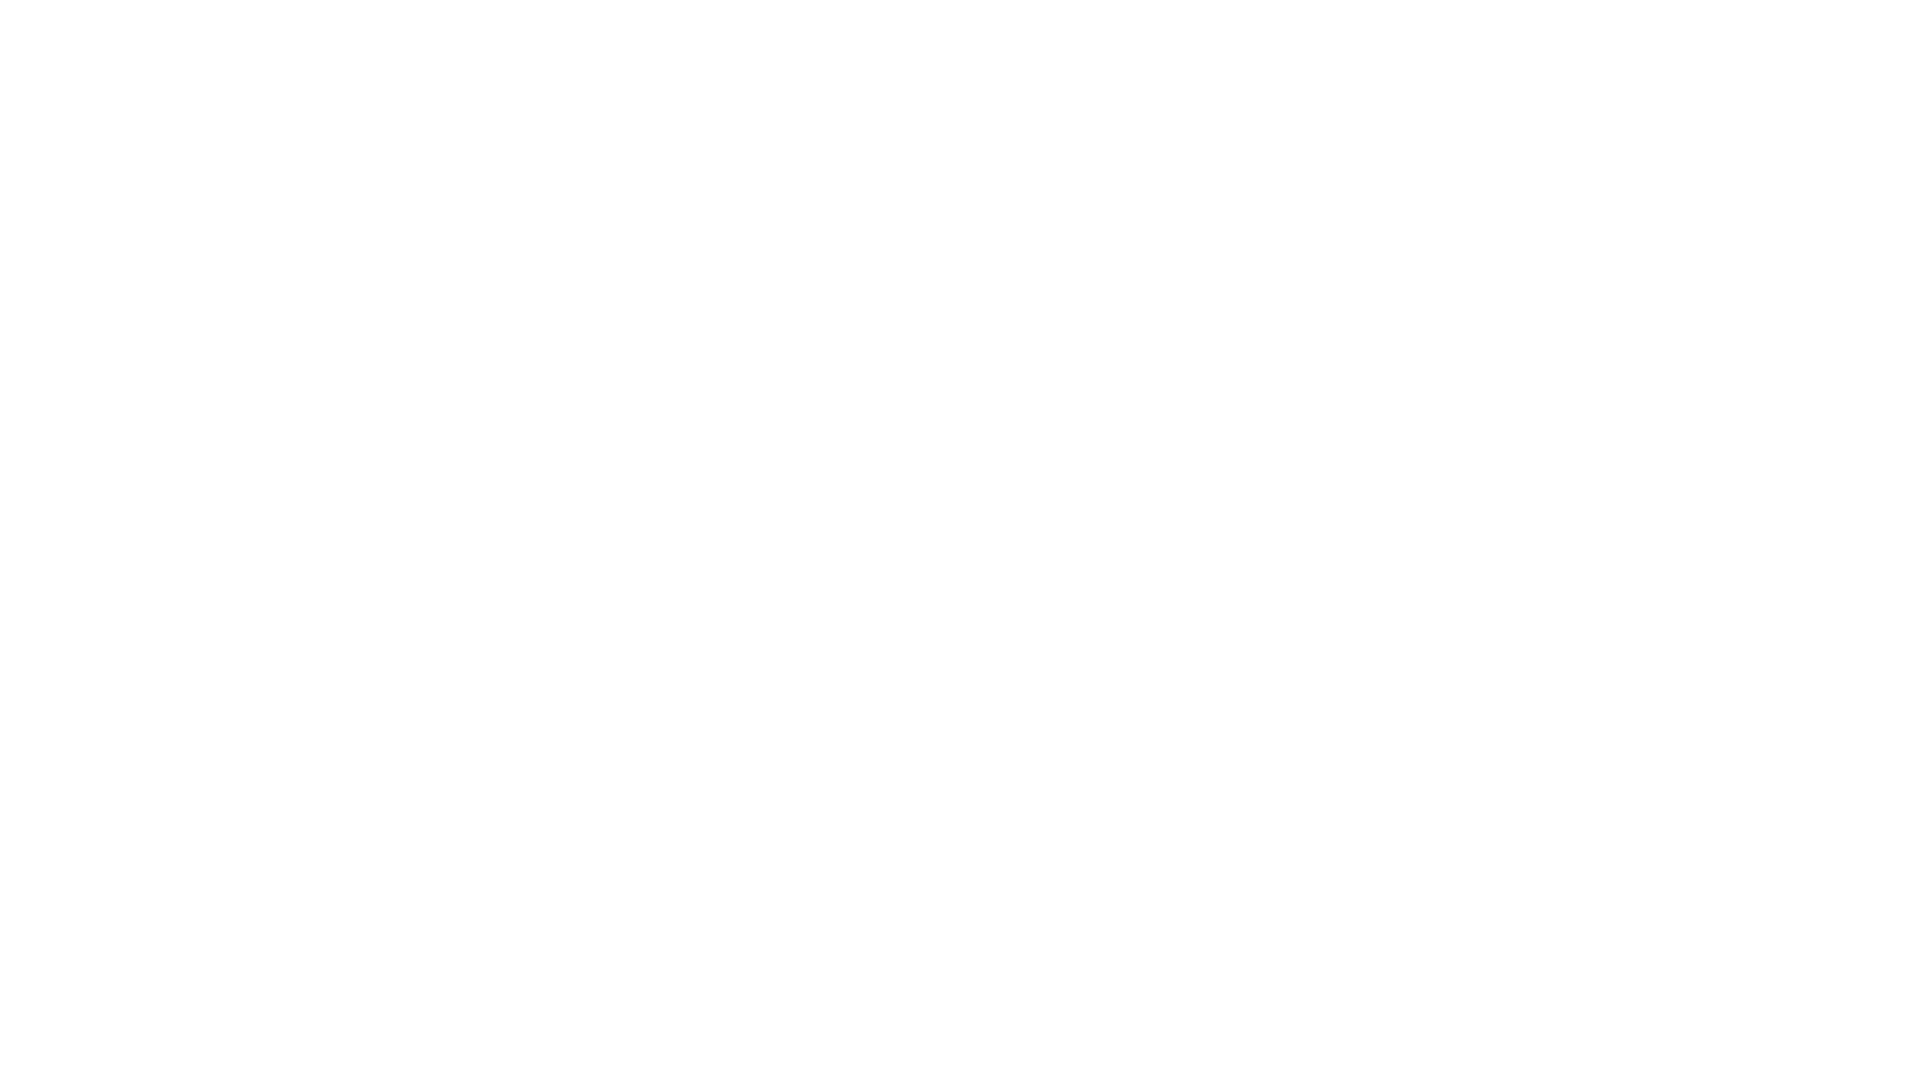 uncover bg.001.png